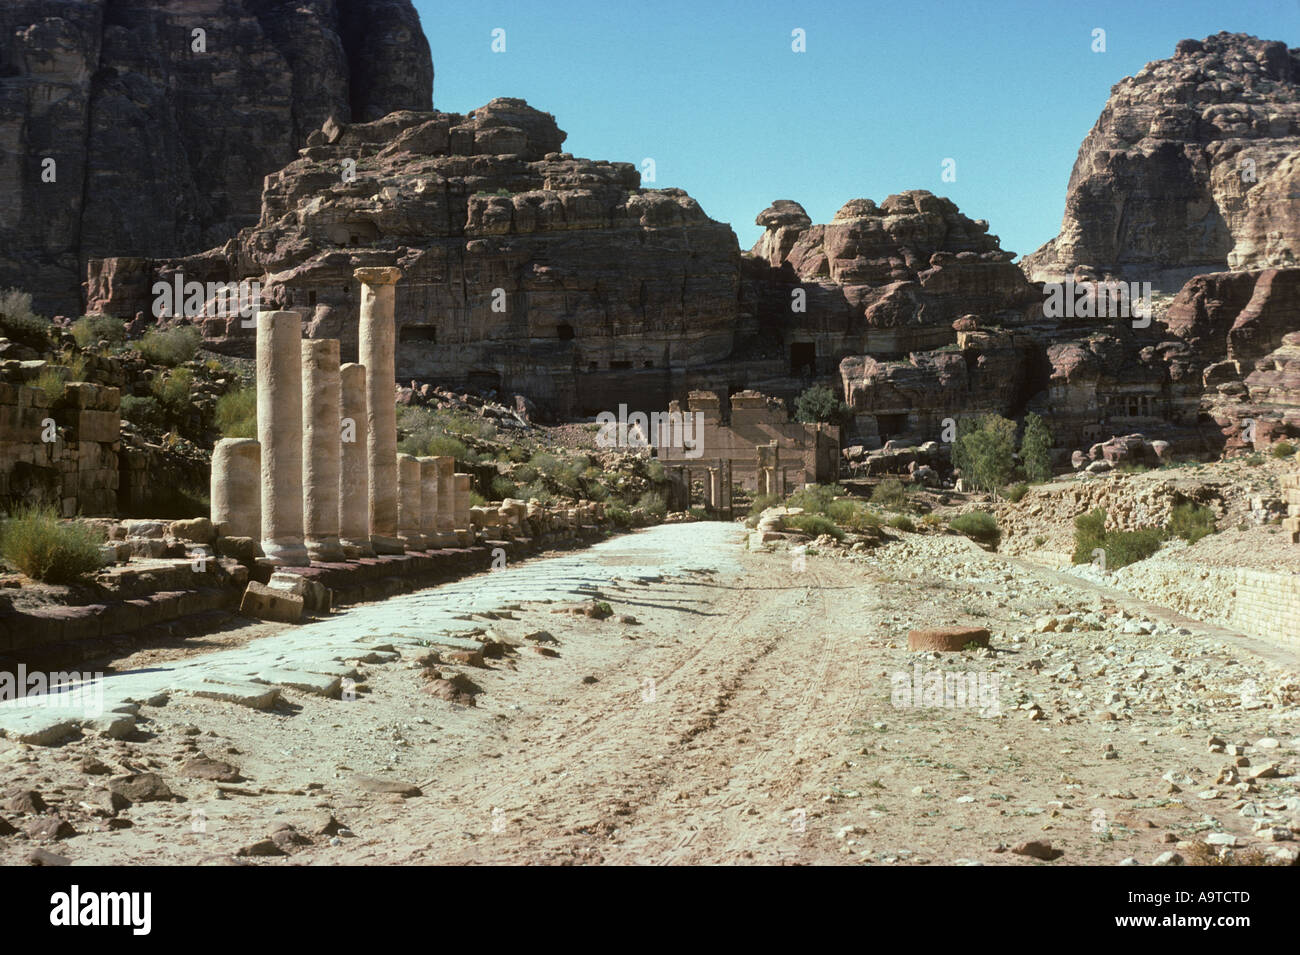 The colonnade street Petra s main street from the first century A D Jordan Middle East Arabia Asia Rose red city Stock Photo